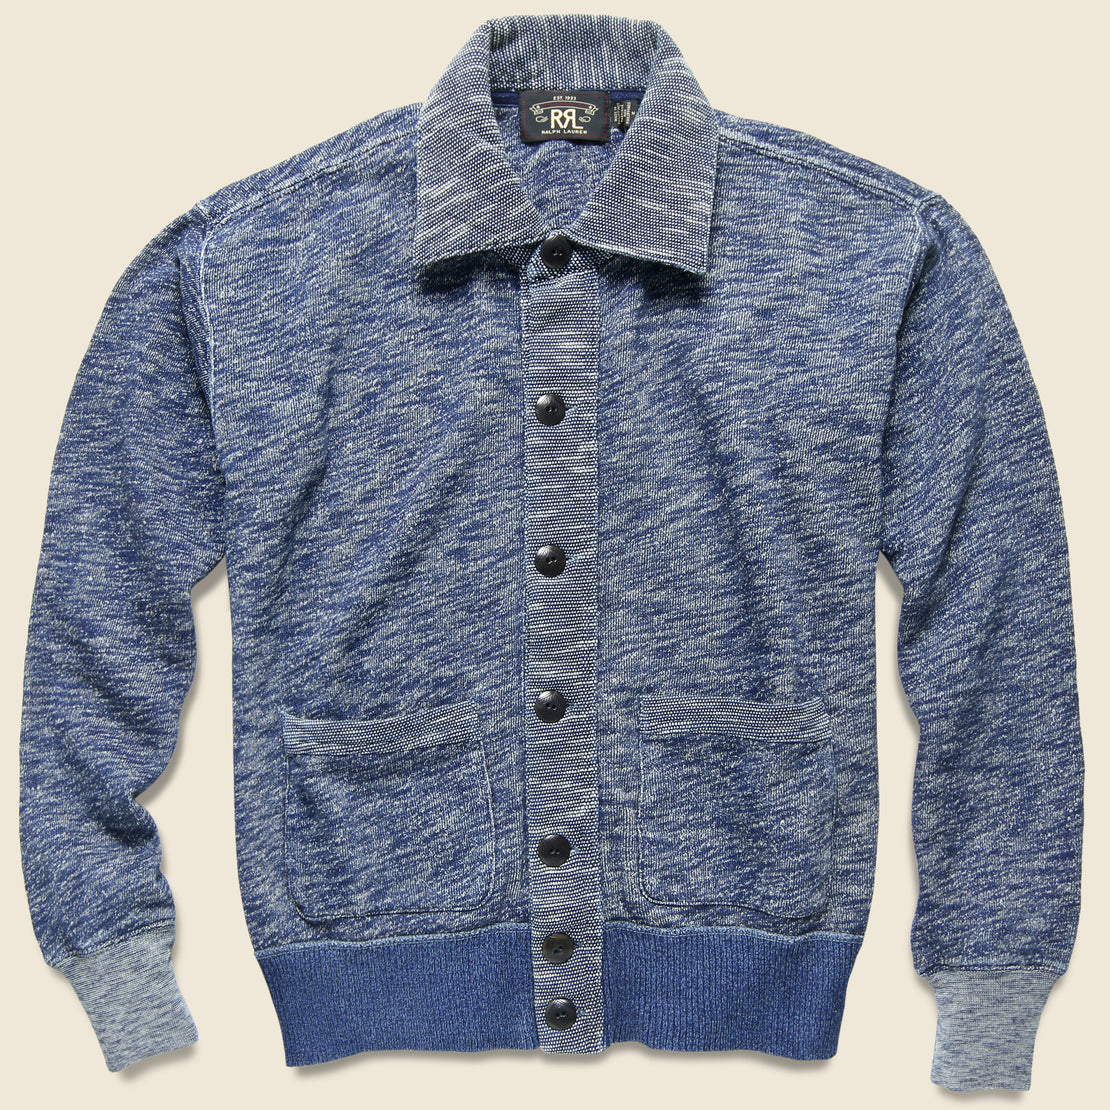 RRL Vintage Fleece Coach Cardigan - Indigo Heather